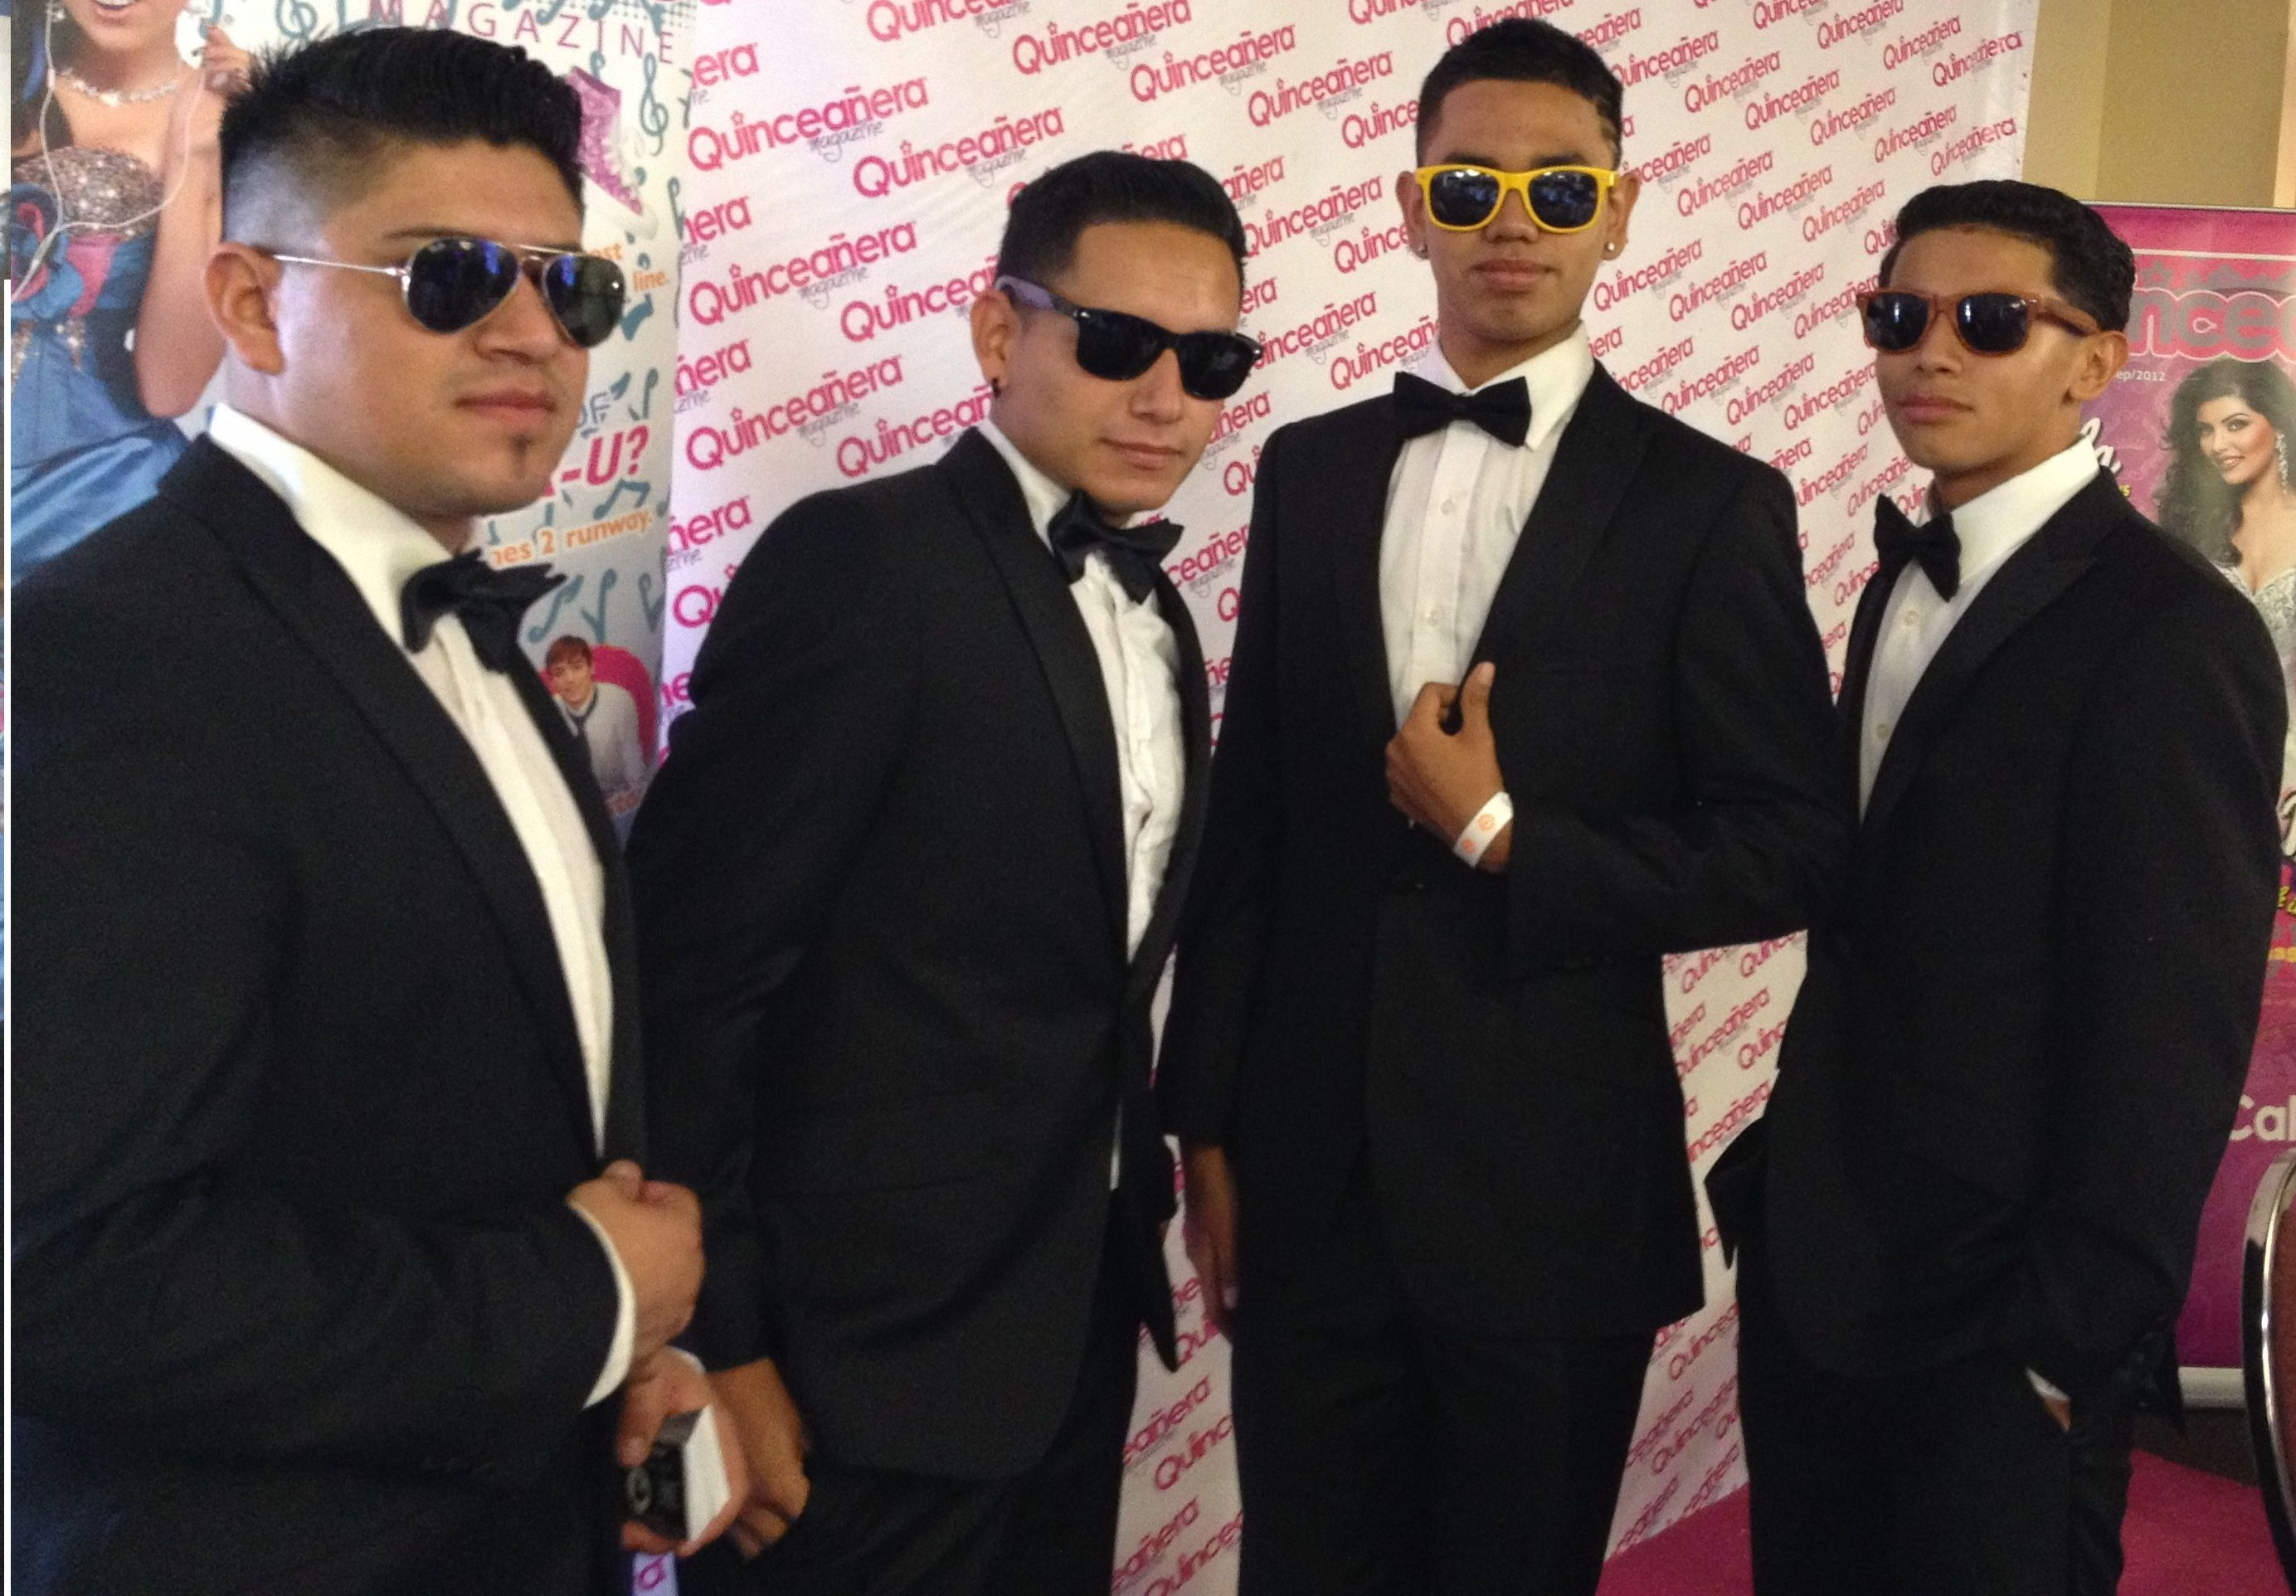 Chambelanes looking cool with sunglasses on at this ... Quinceanera Chambelanes Tuxedos With Blue